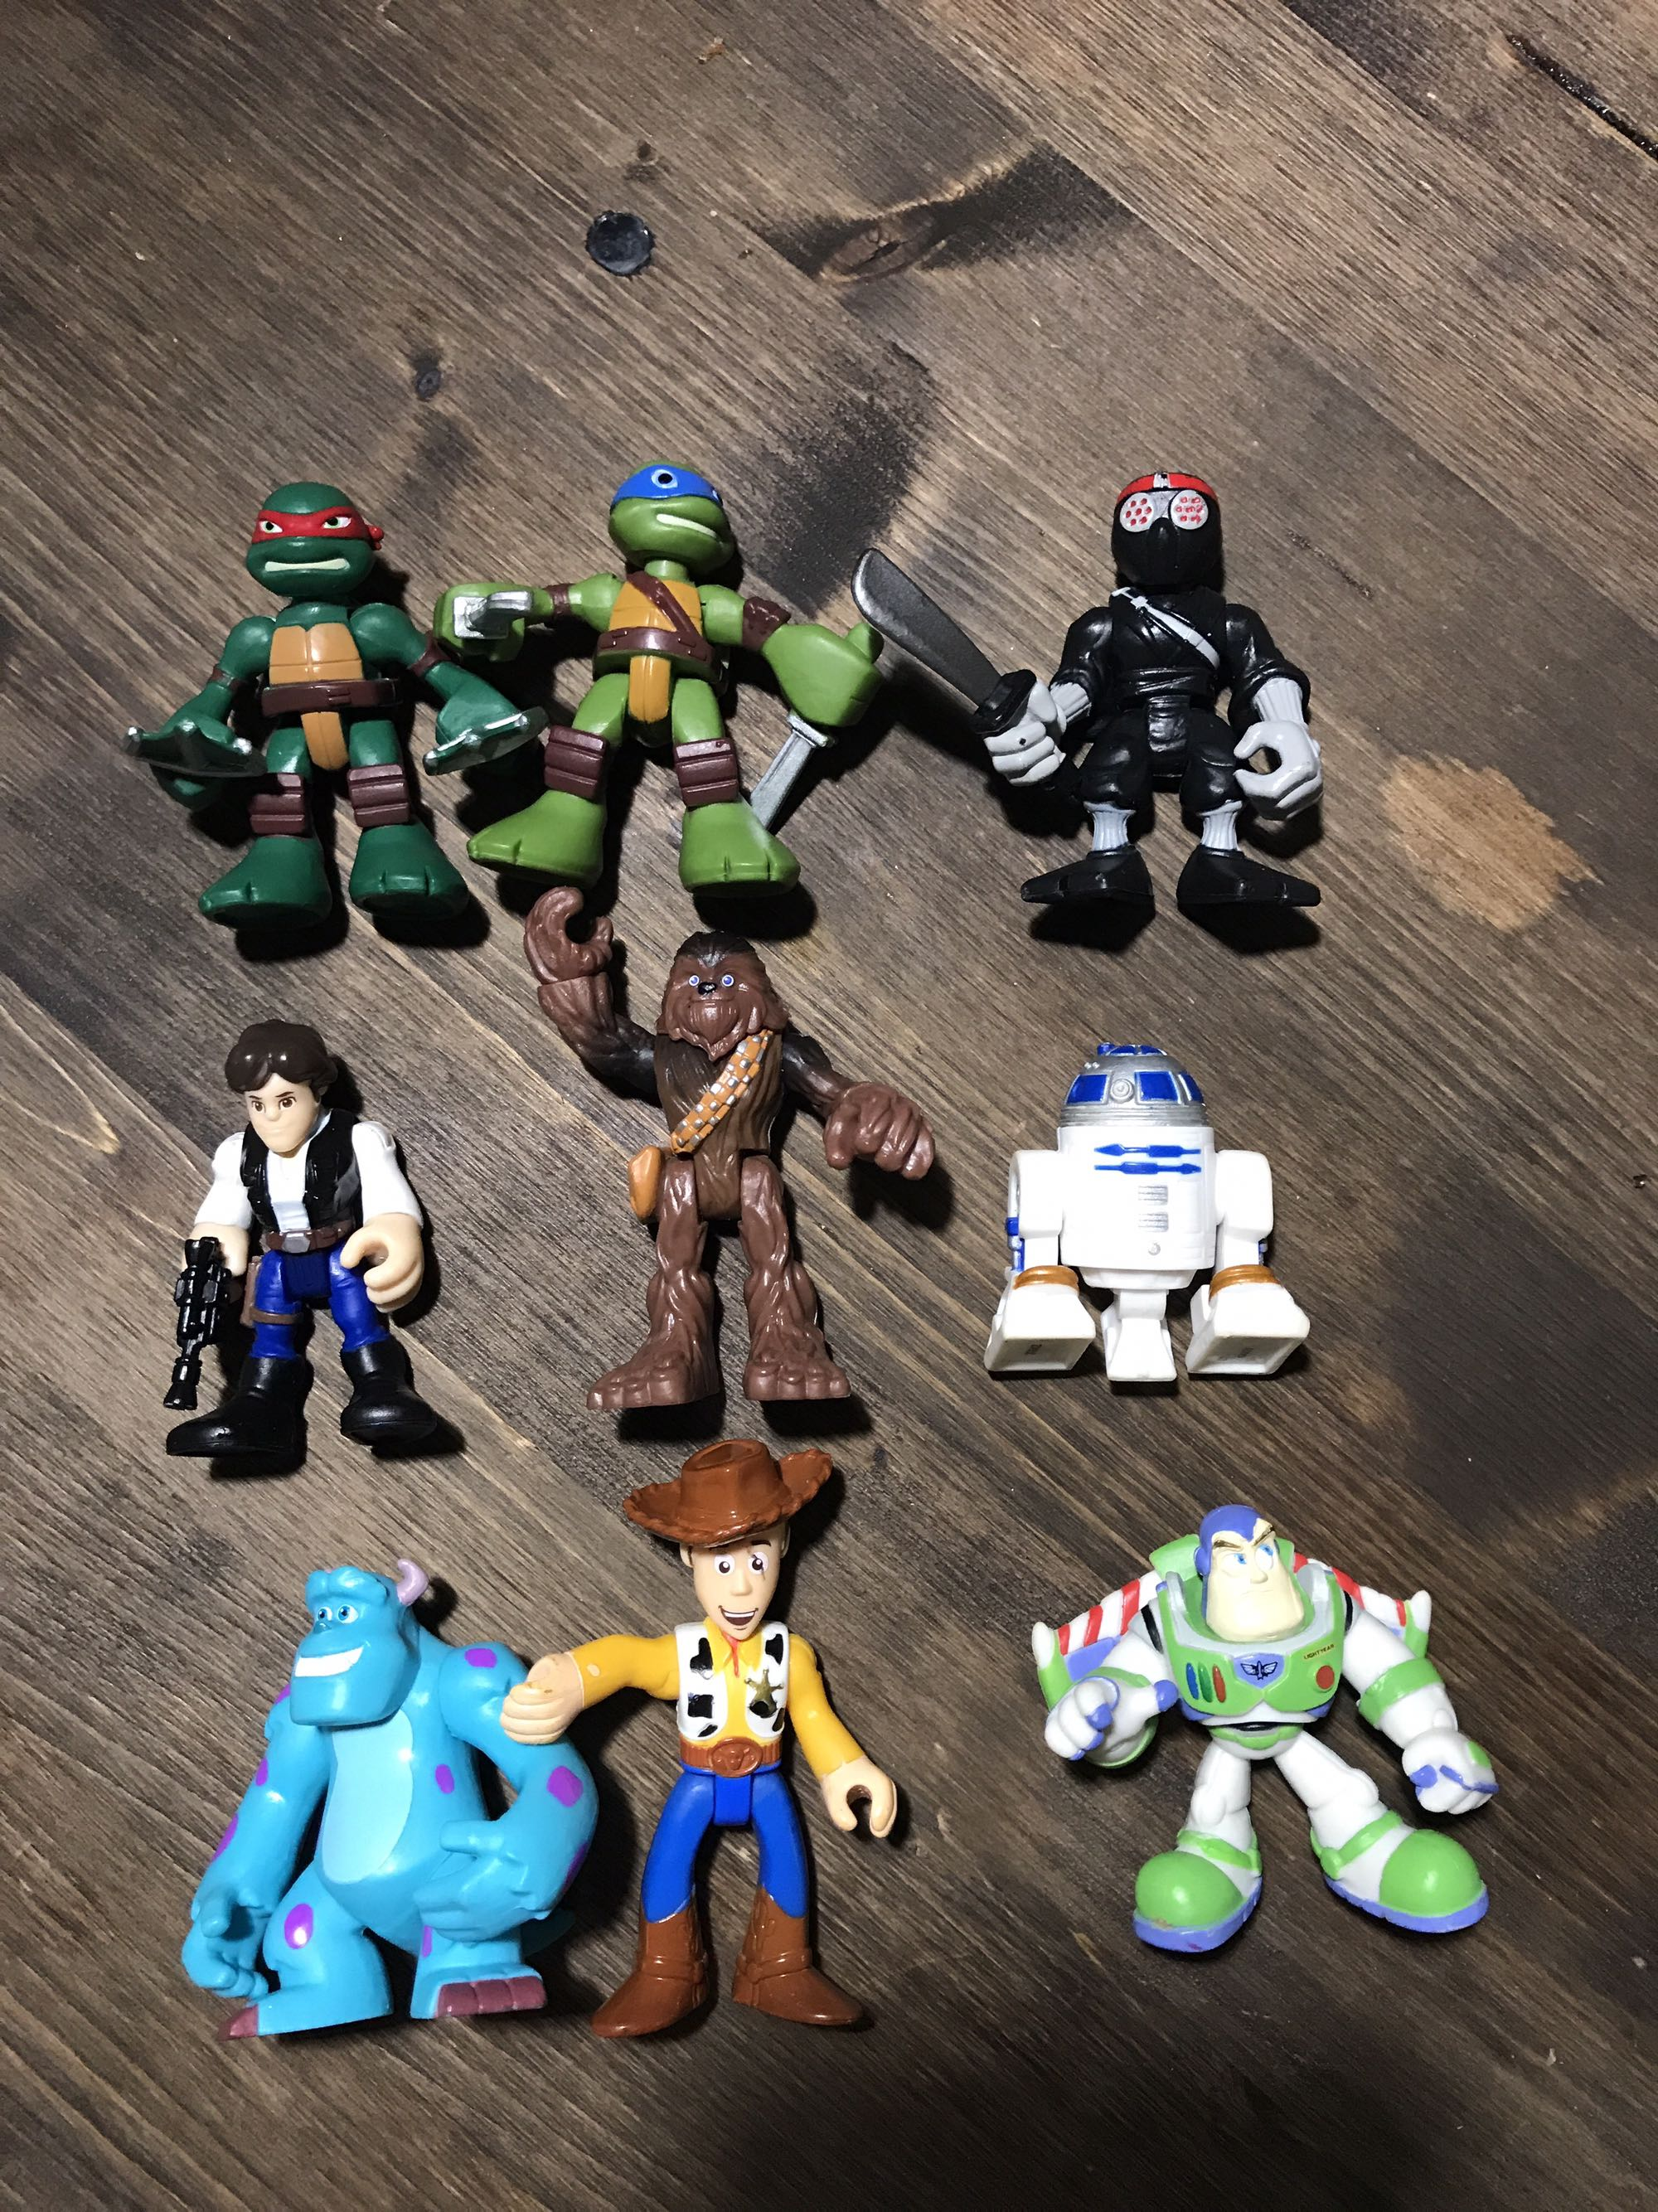 Imaginext figures